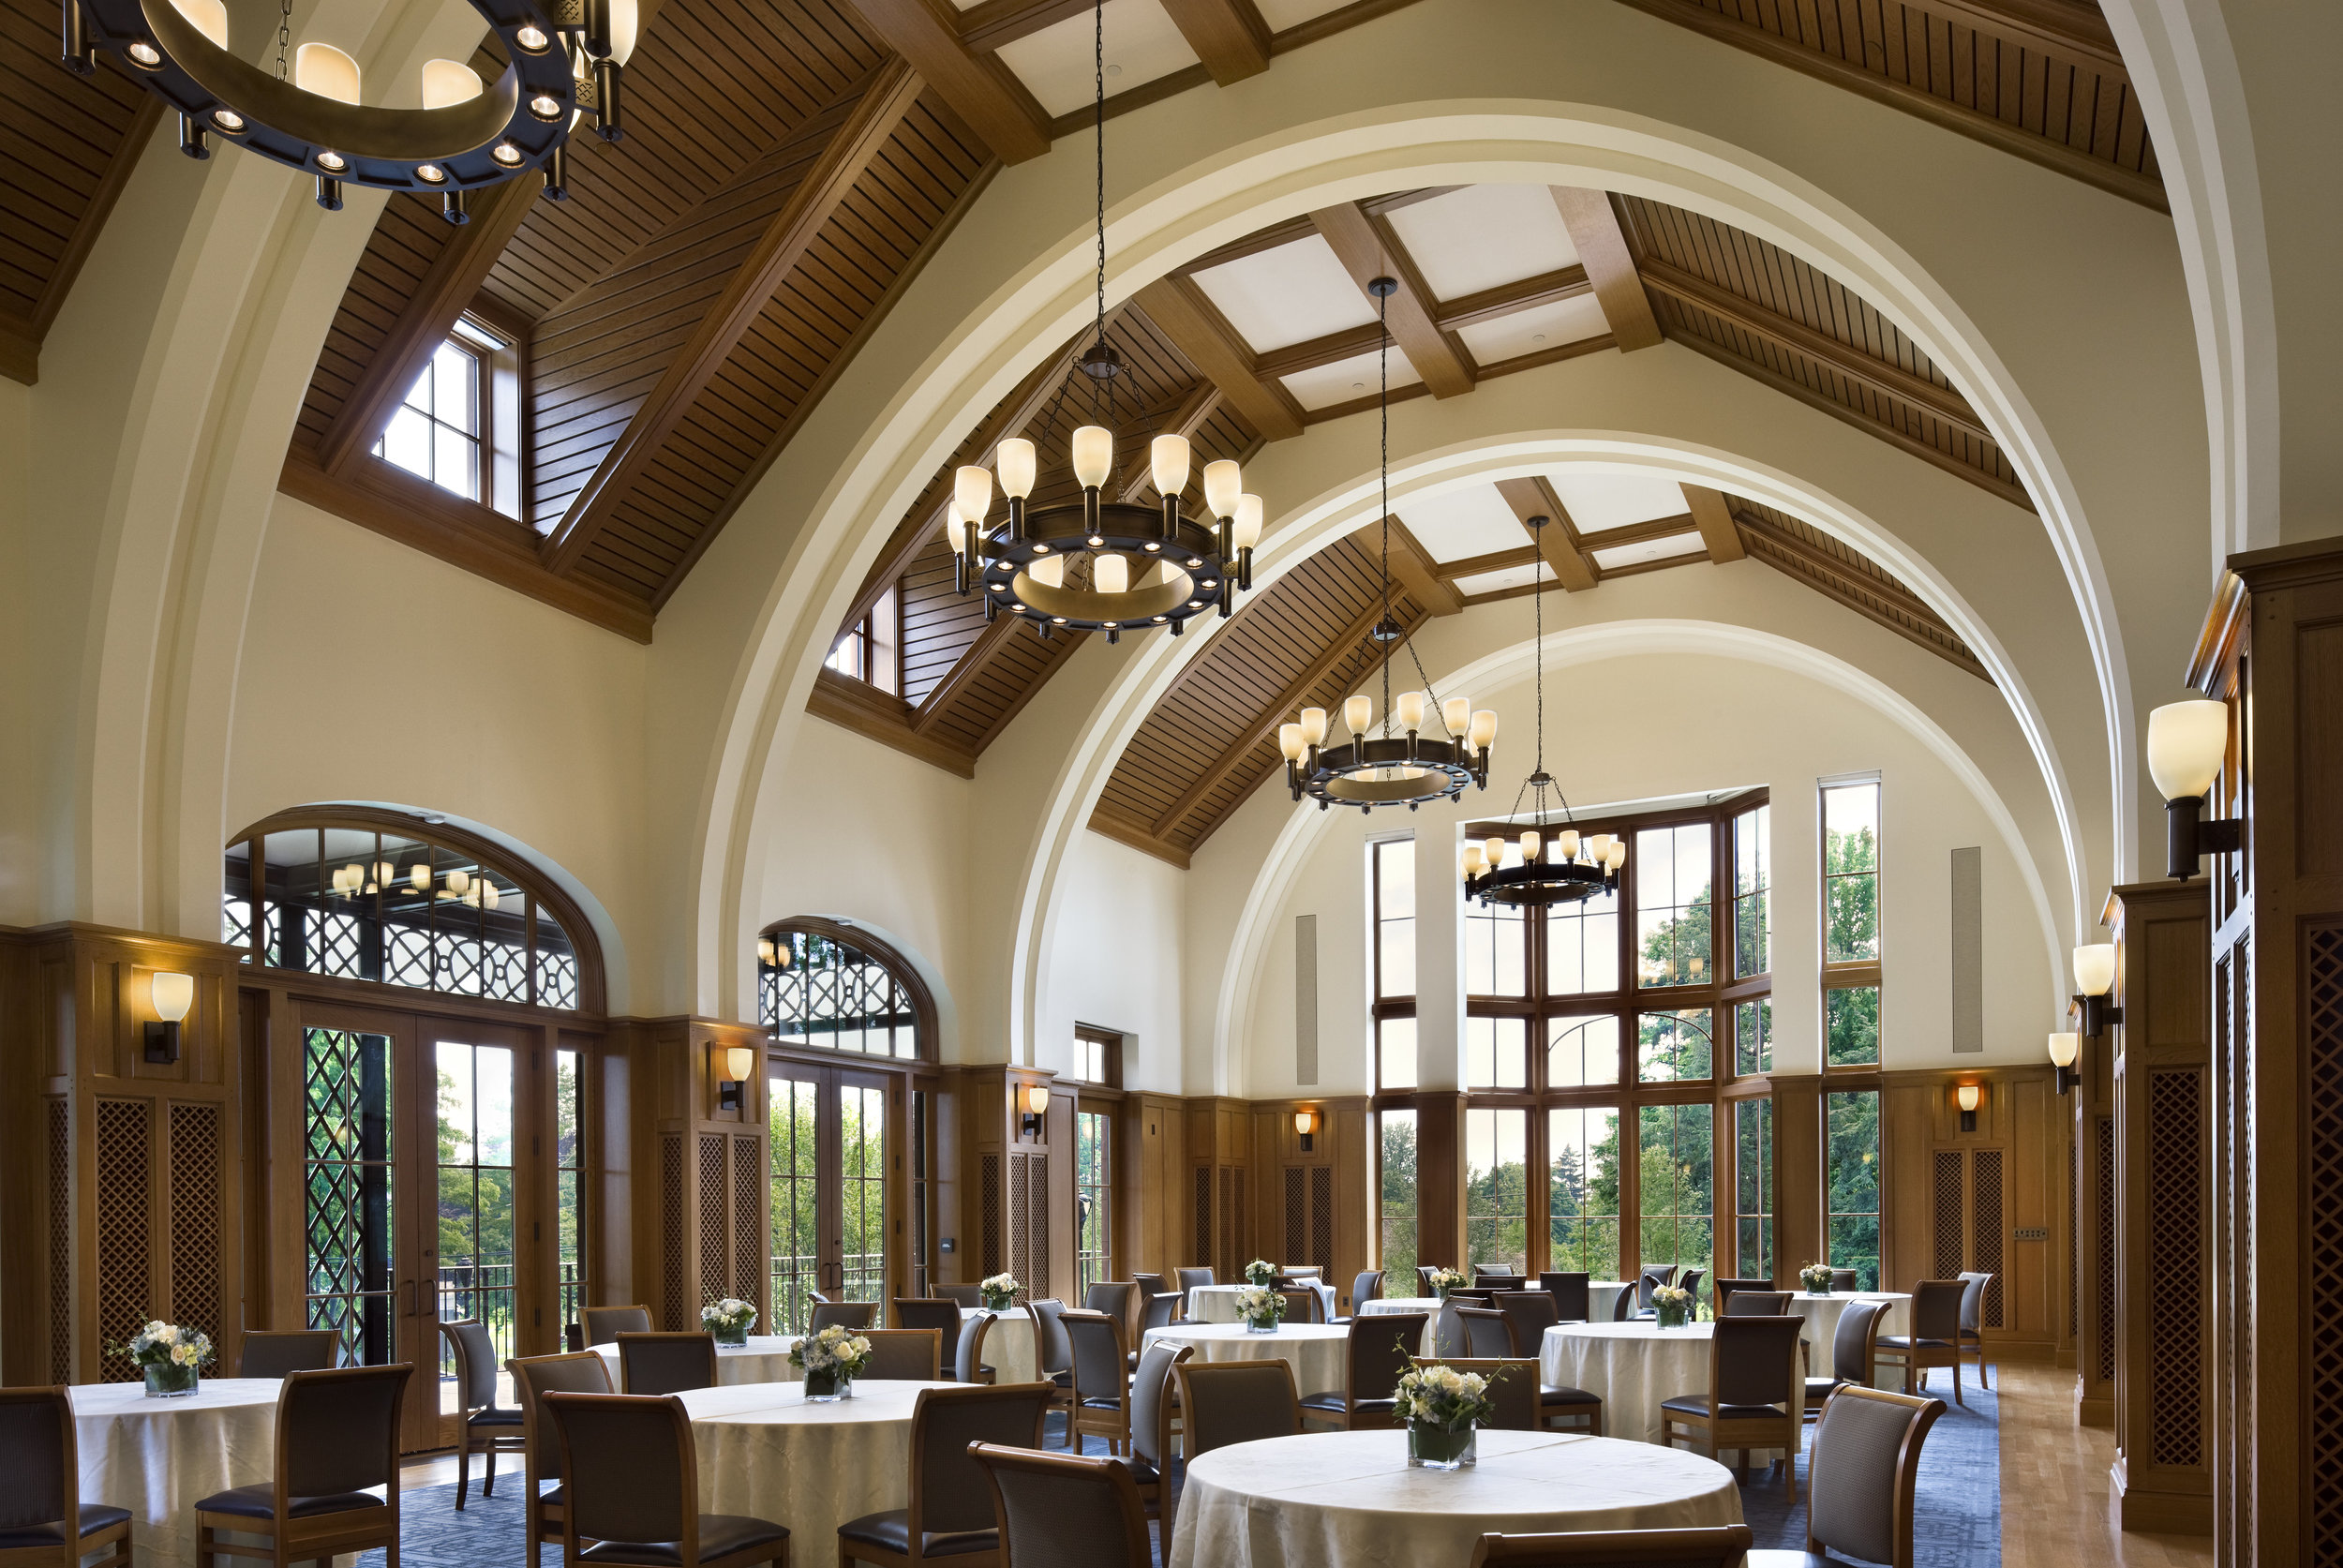 Conference Center Dining Hall